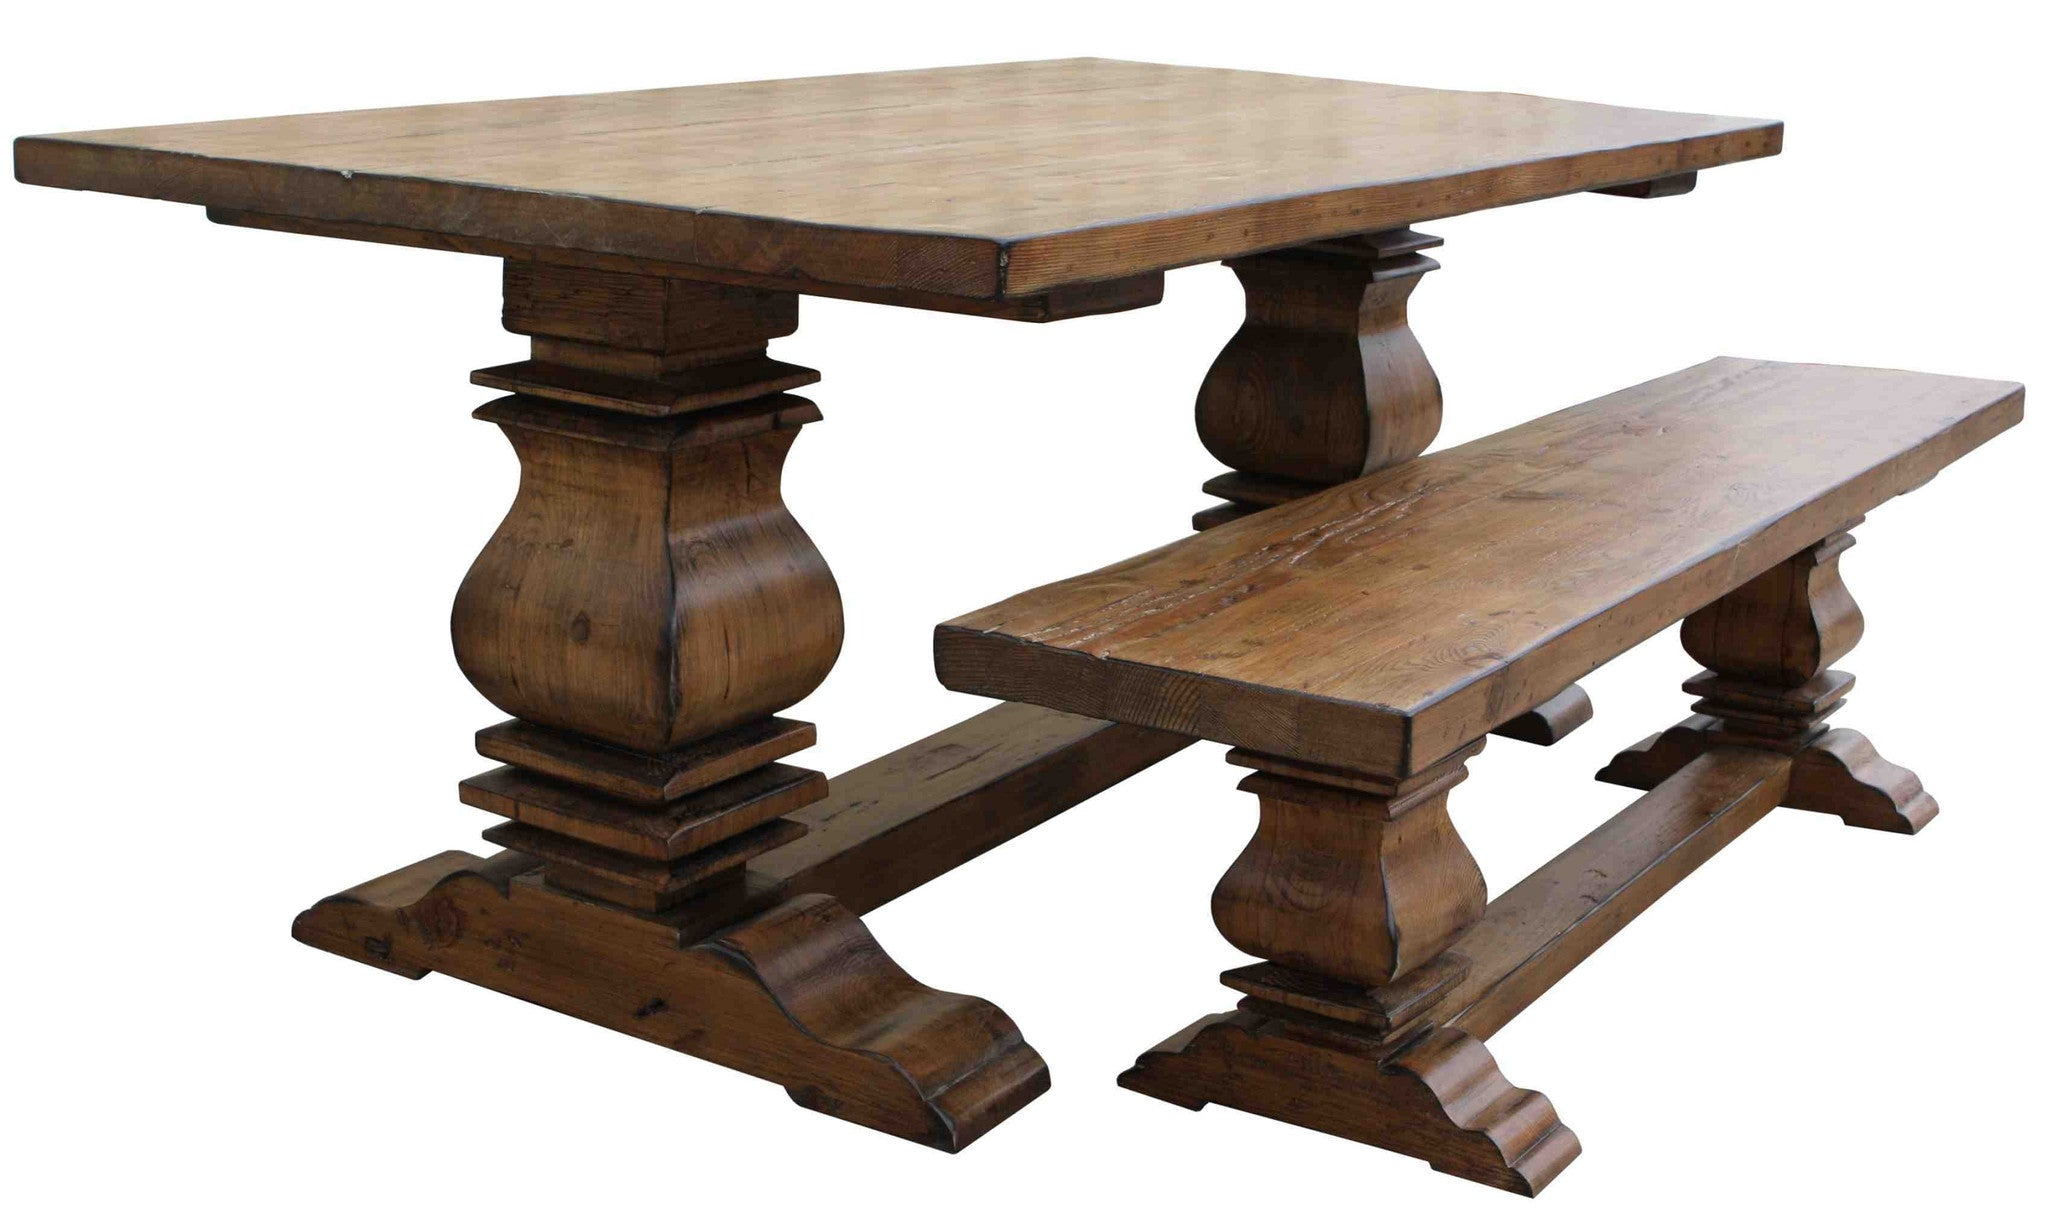 Custom Reclaimed Wood Trestle Dining Room Tables Handmade: reclaimed wood furniture colorado